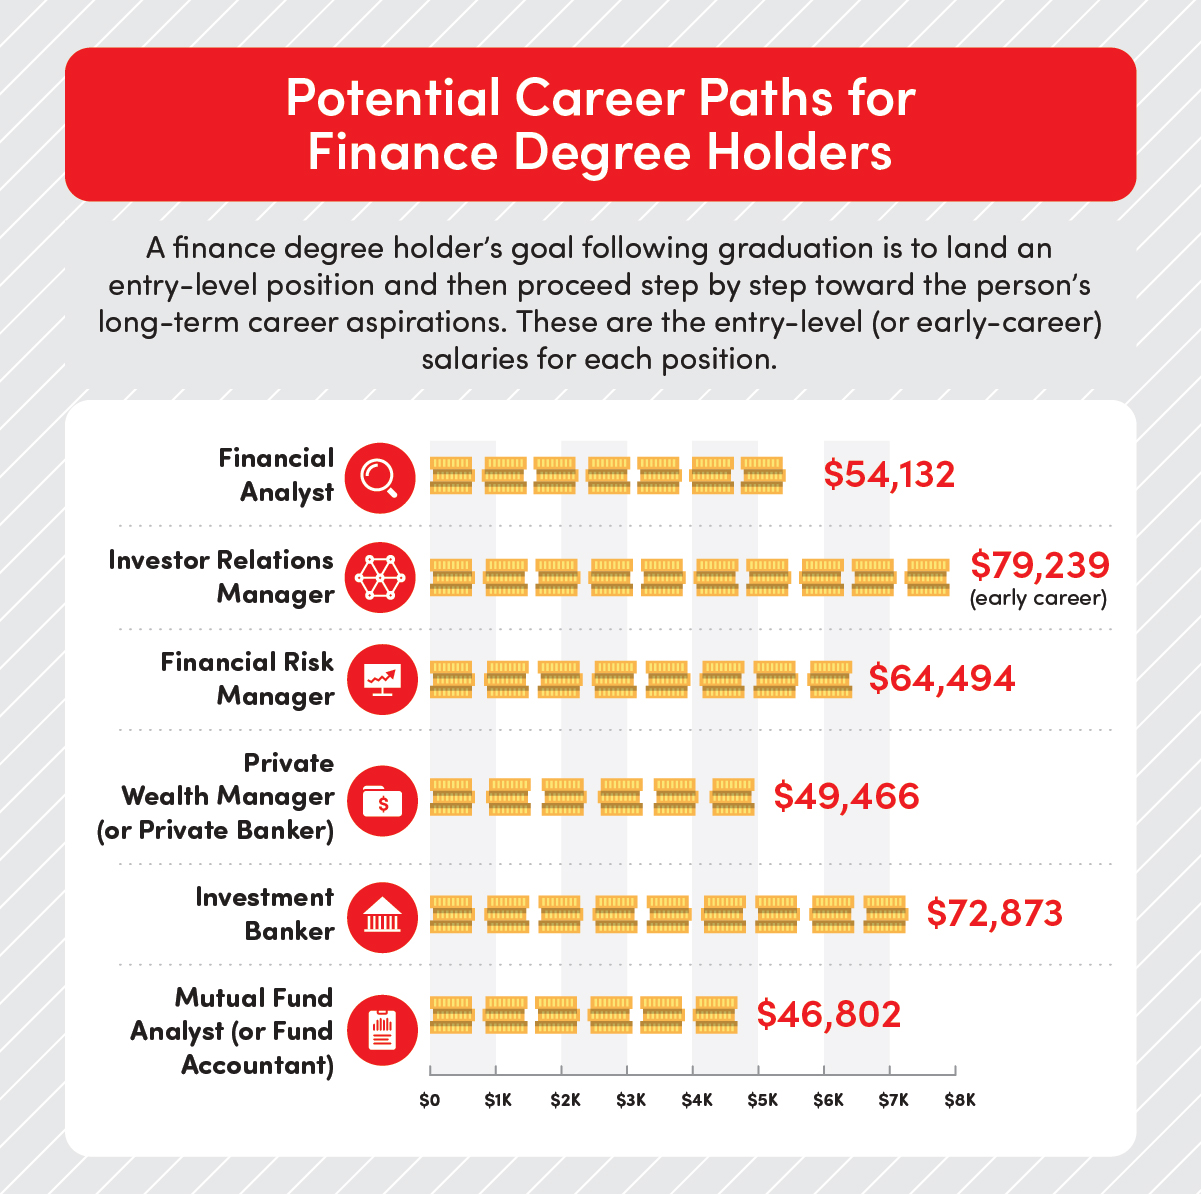 Potential career paths and salaries for finance degree holders